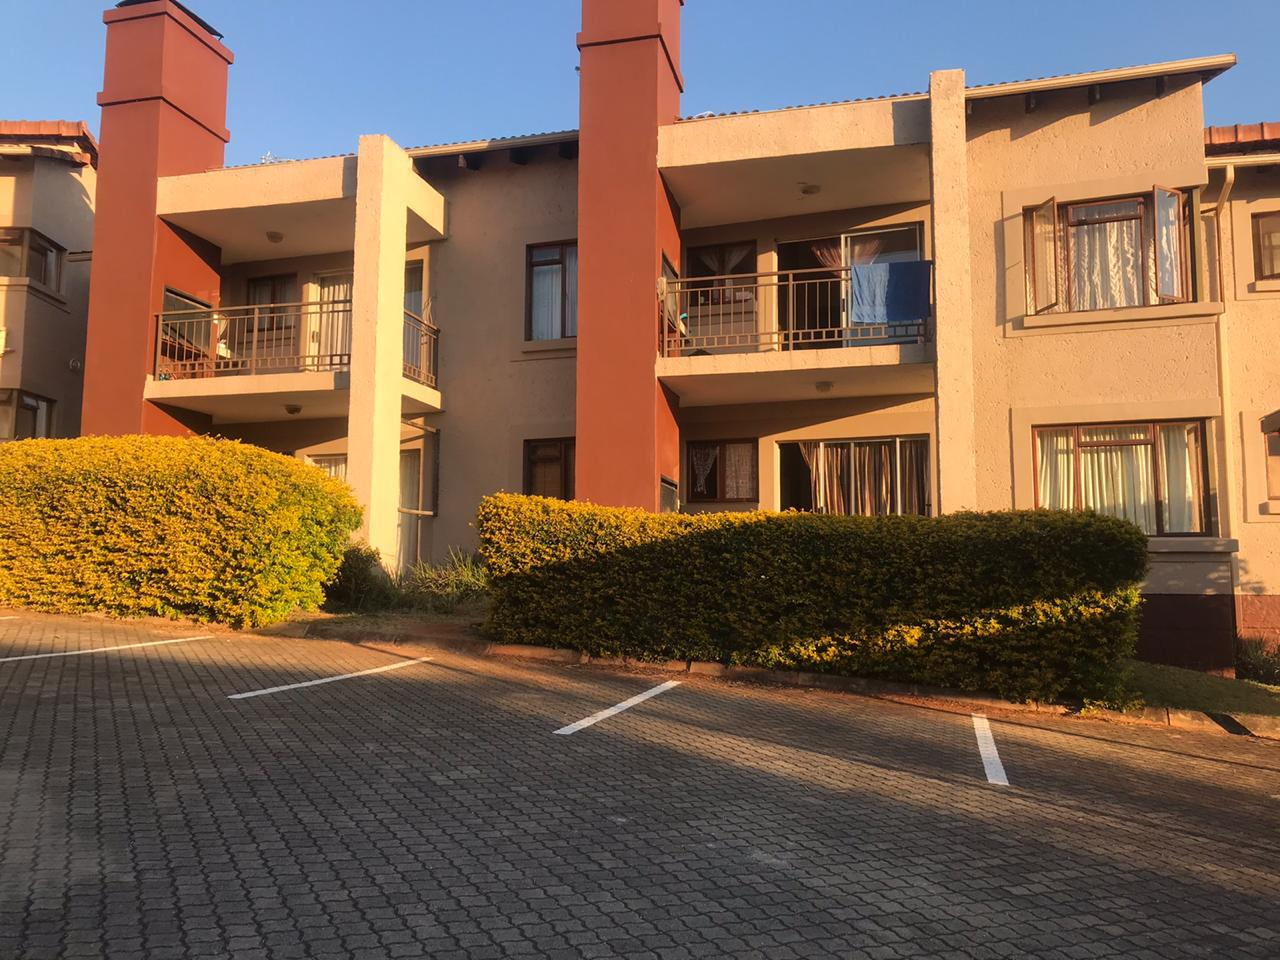 2 Bedroom Apartment For Sale in White River Ext 18  - Unit 26